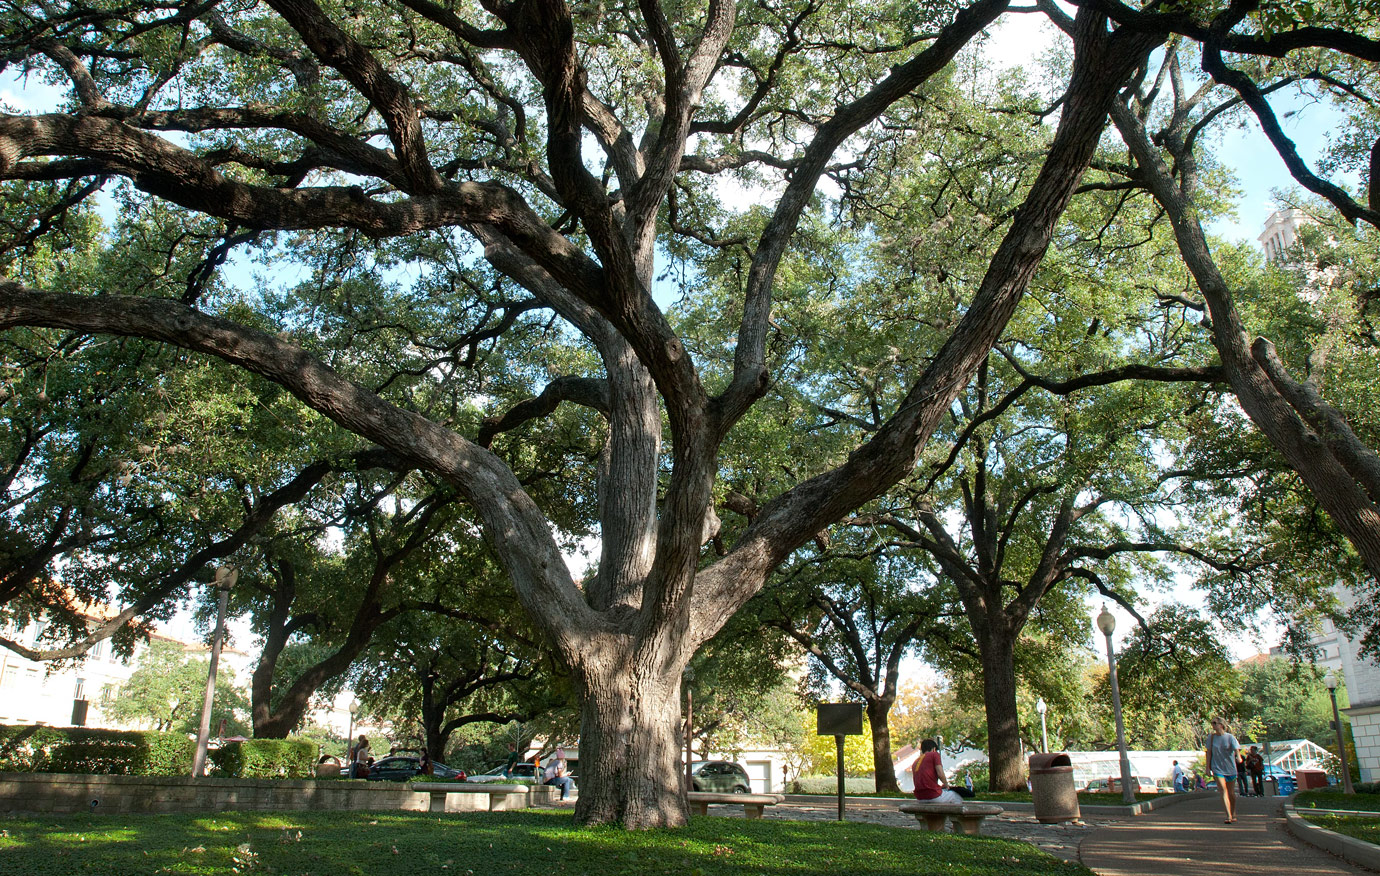 Battle Oaks - Famous tree survivors of the survivors of the Civil War